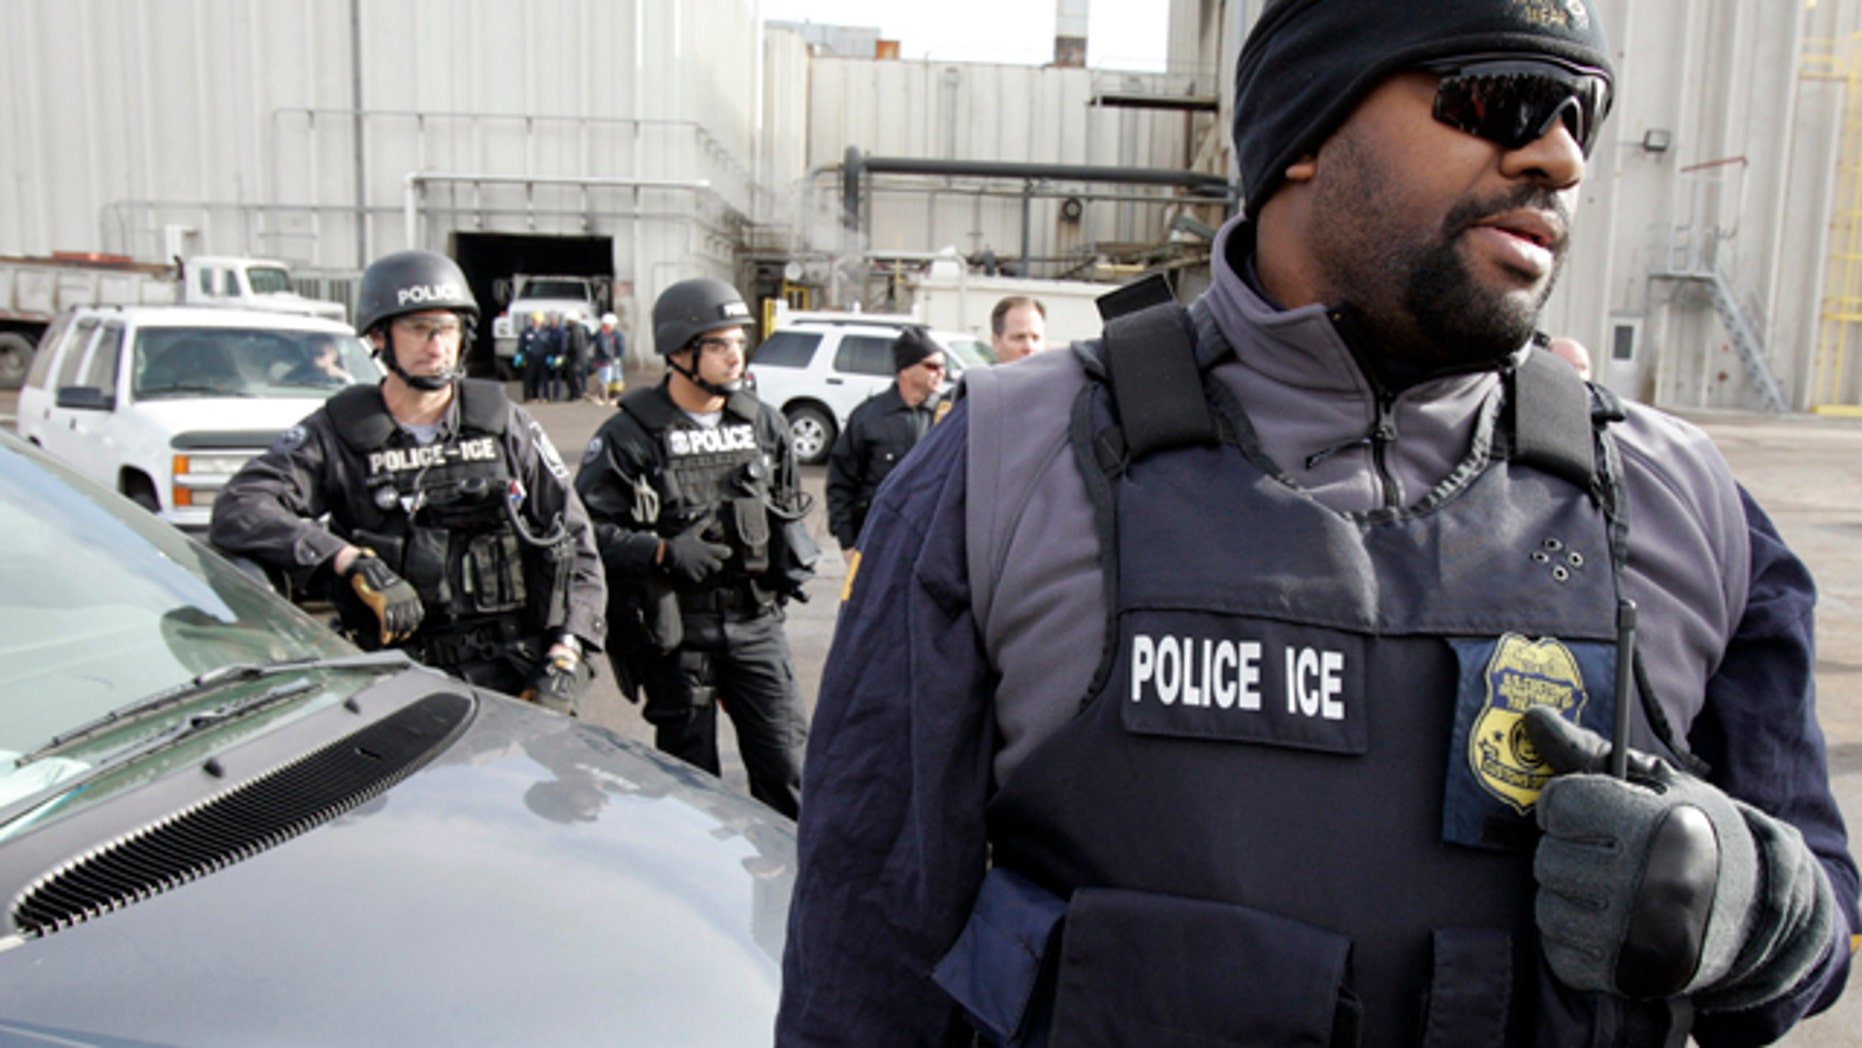 Agents with U.S. Immigration and Customs Enforcement.